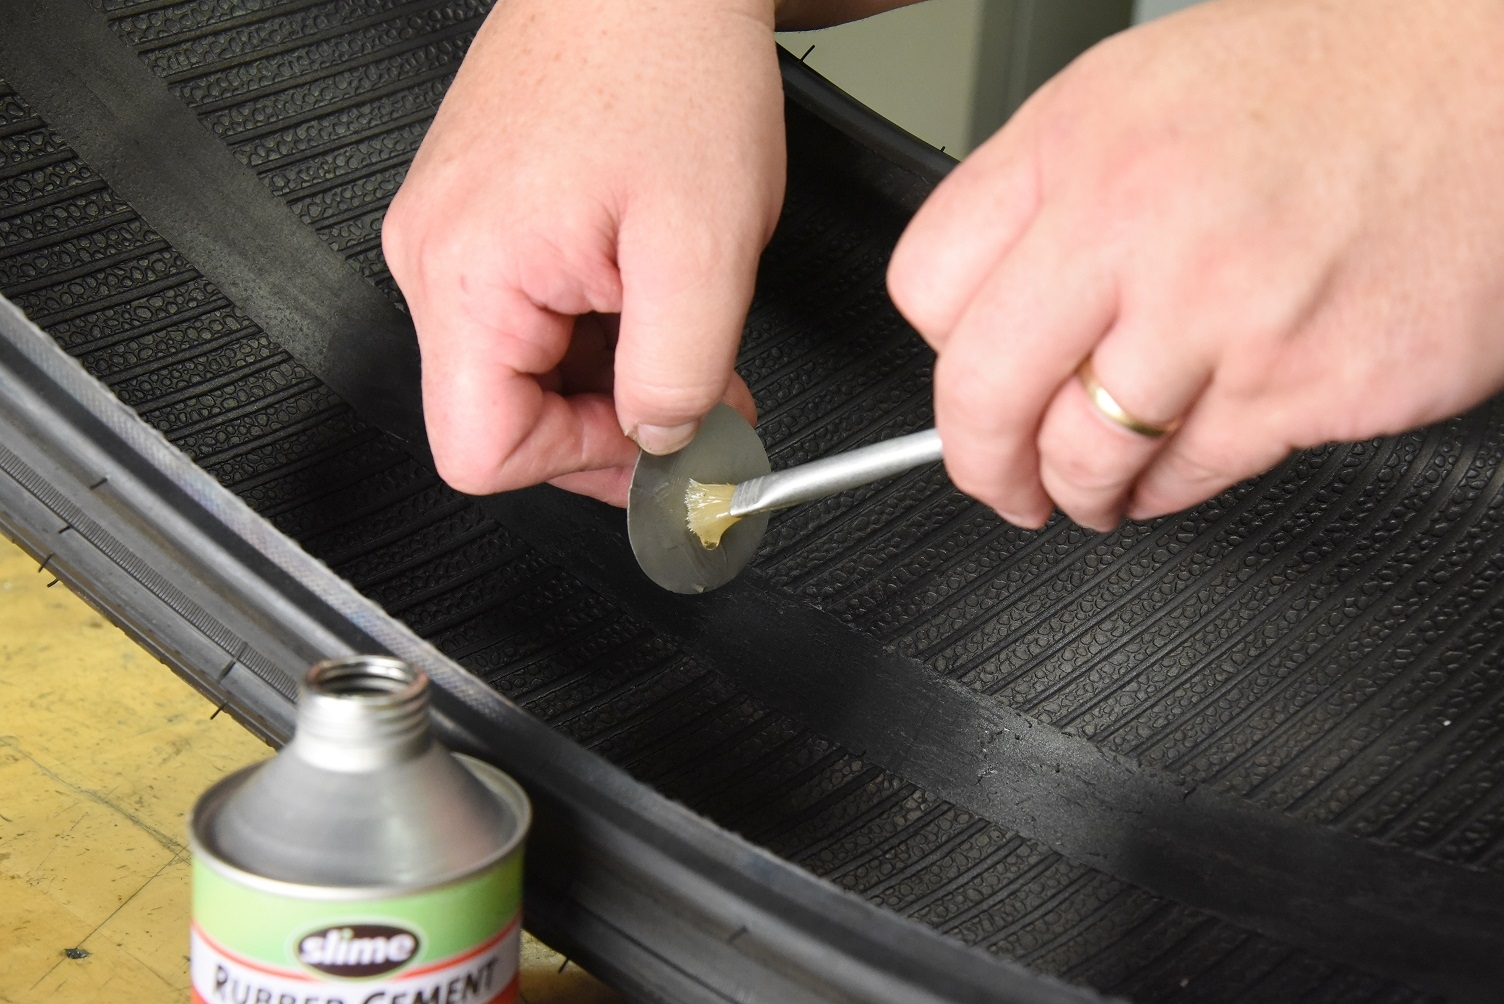 Rubber cement to patch a tire